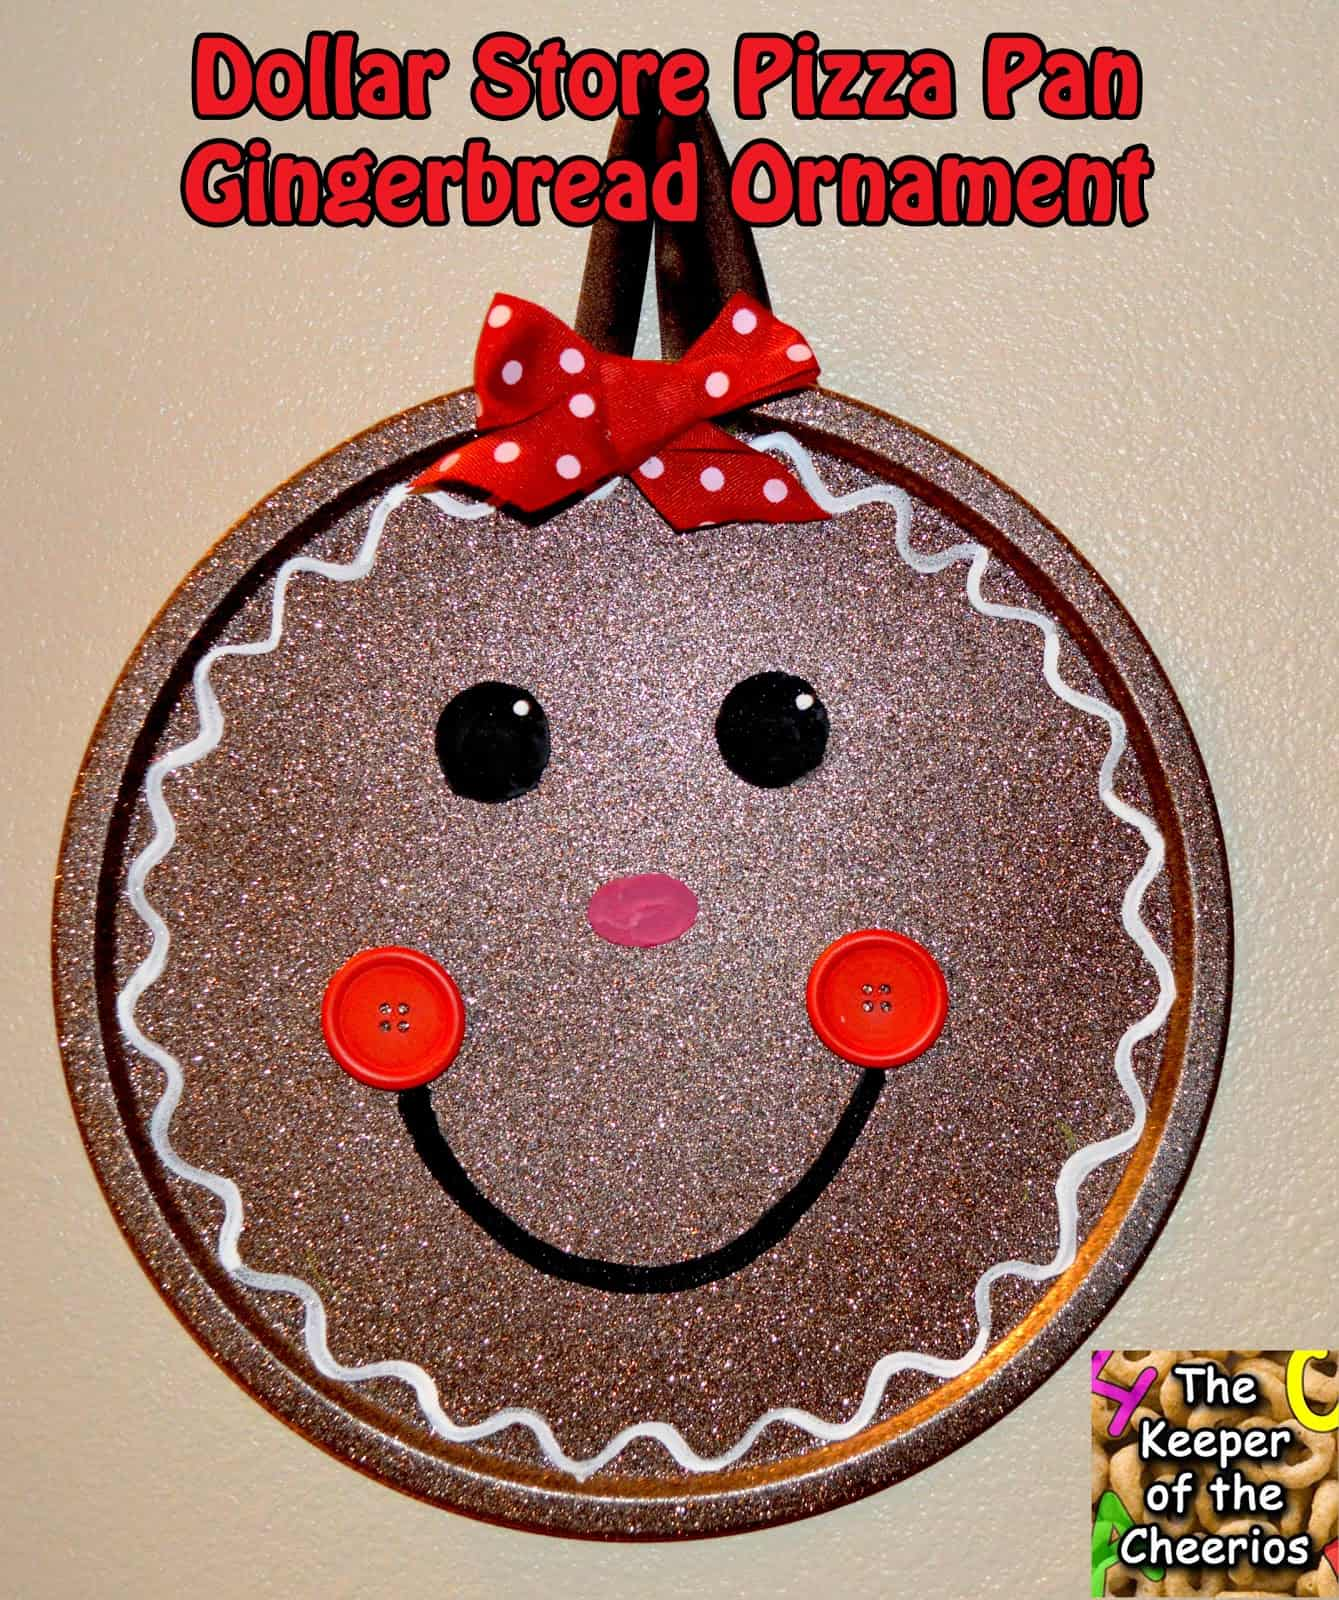 Sparkly pizza pan gingerbread man